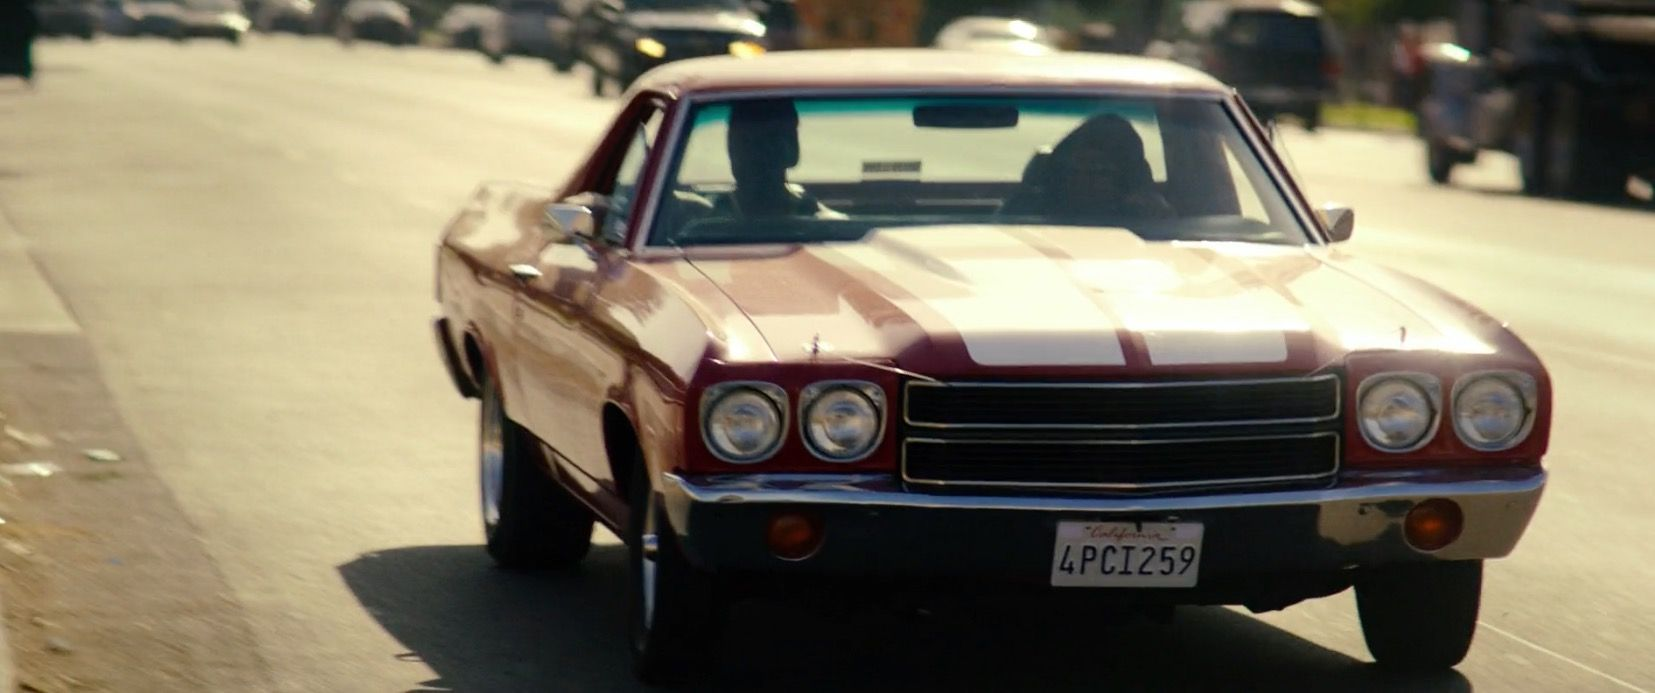 Chevrolet El Camino 1970 Car In Dope 2015 Chevrolet